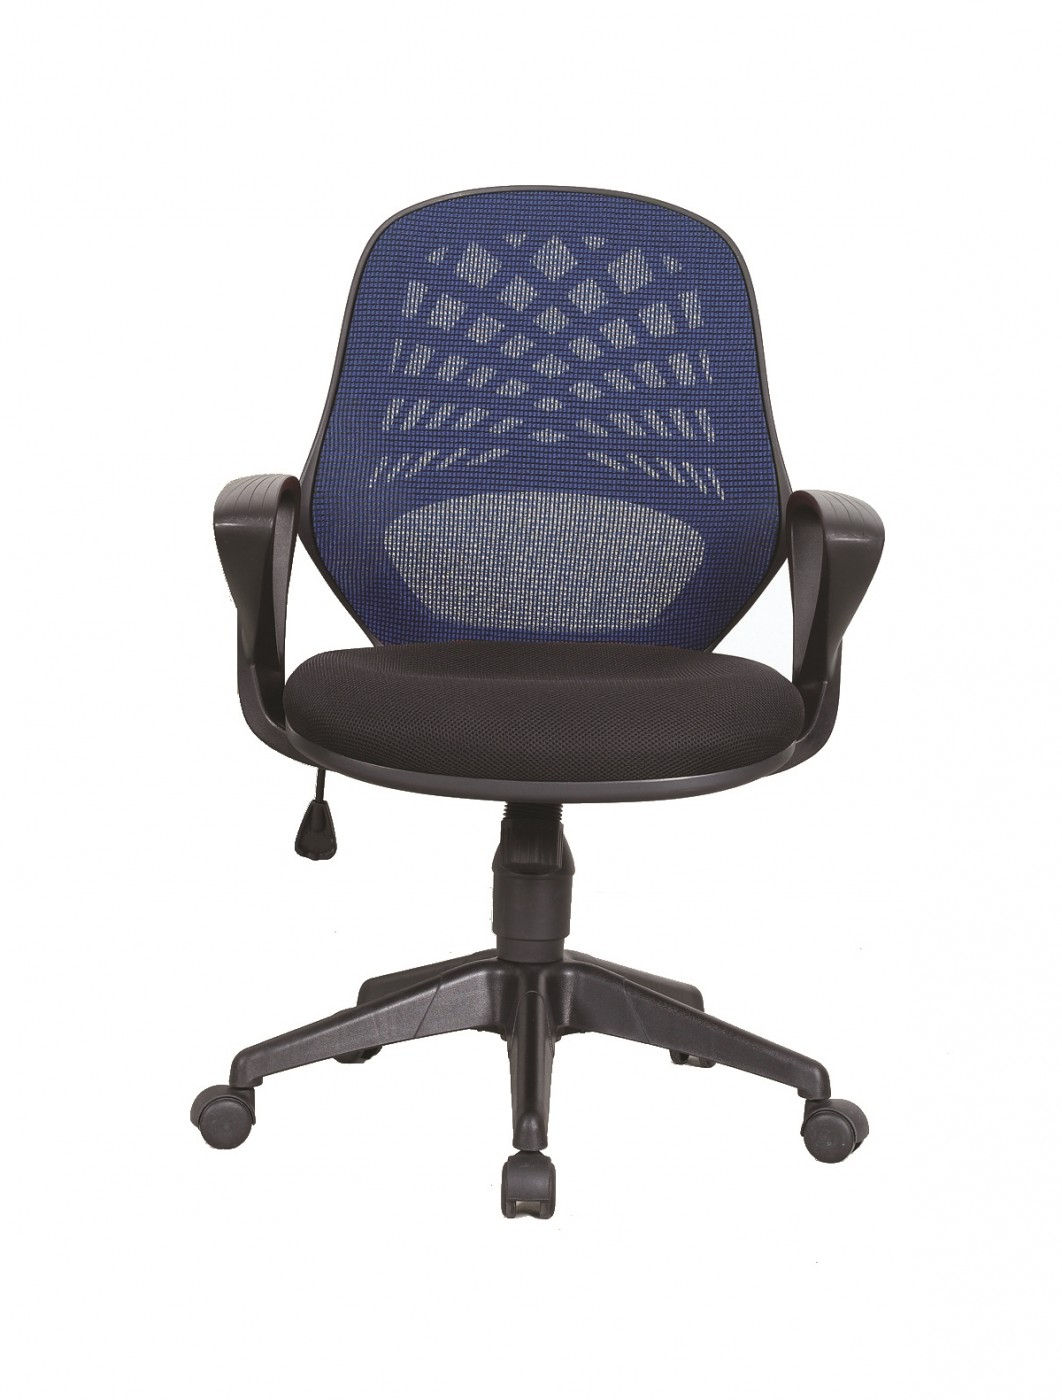 office chairs lattice mesh chair bcmk116 121 office furniture